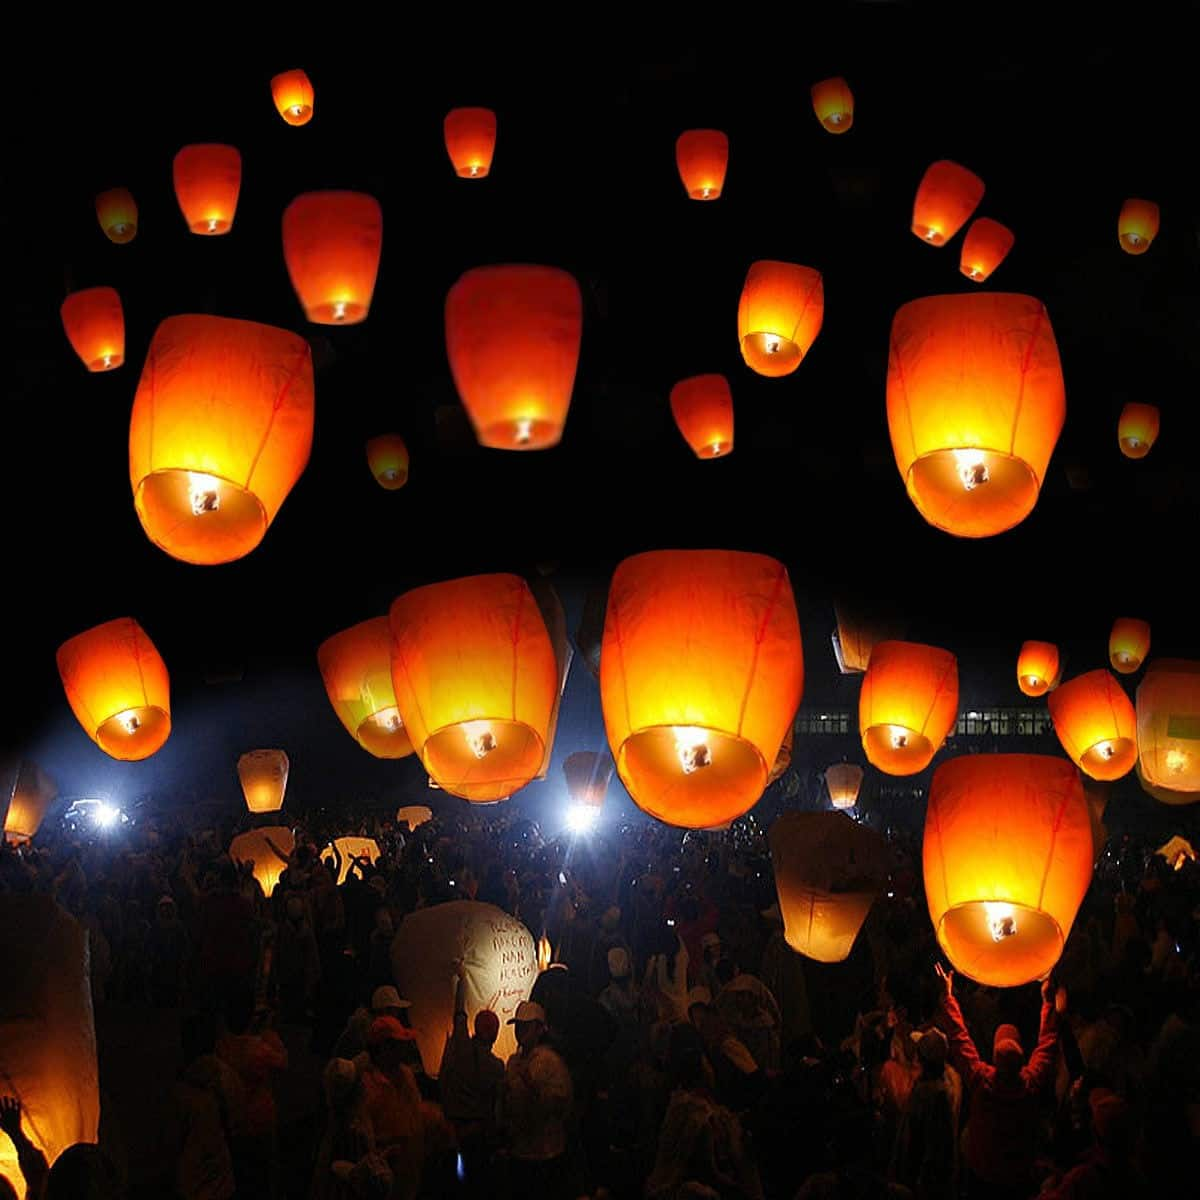 Costway 50-Pieces of White Paper Chinese Lanterns $19.95 + Free Shipping